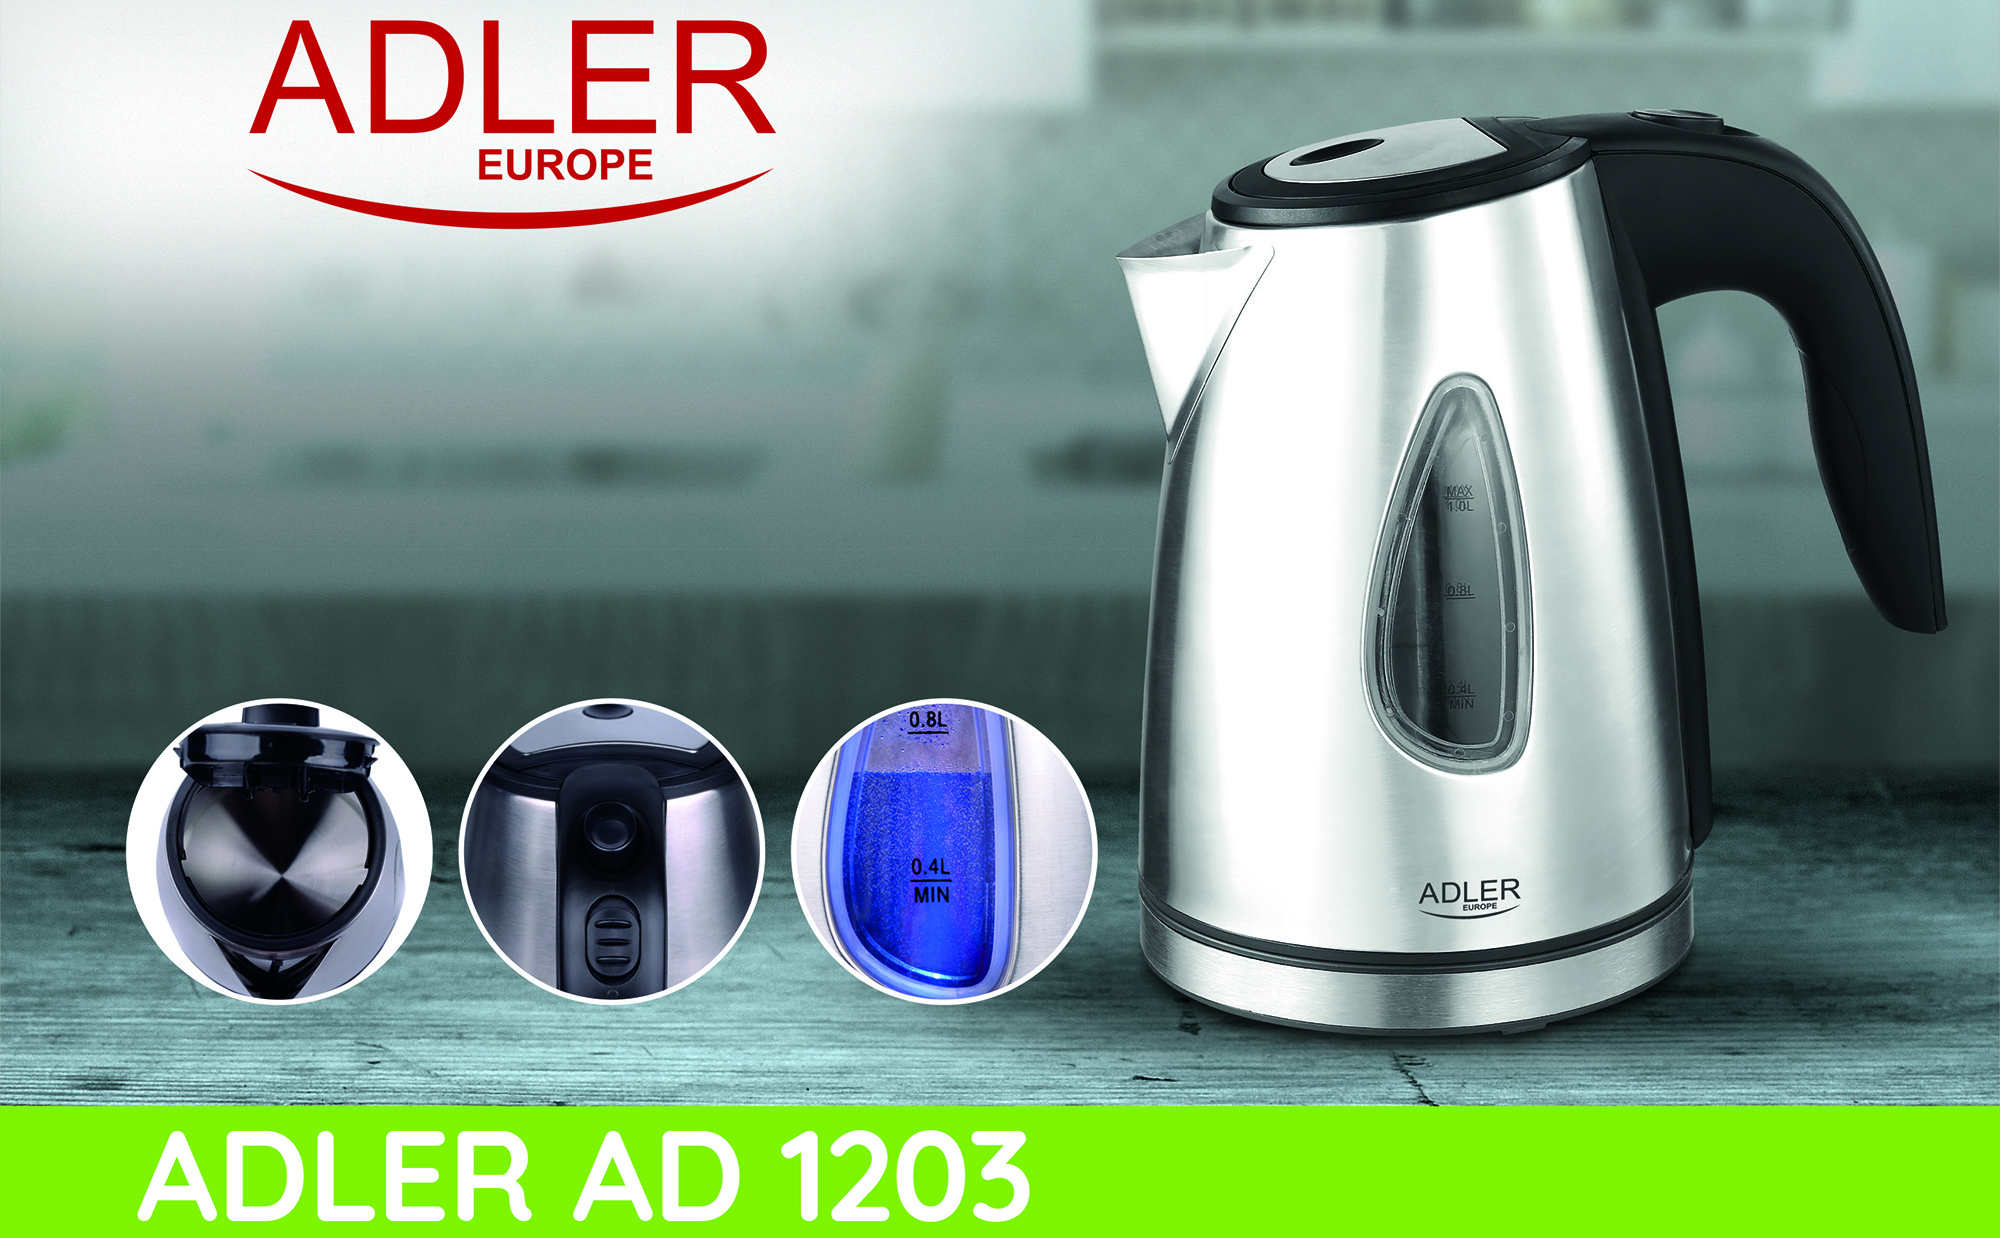 ADLER AD-1203 Stainless steel electric kettle, Backlit 1 liter, automatic lid, anti-lime filter, 360° base, 1600 W